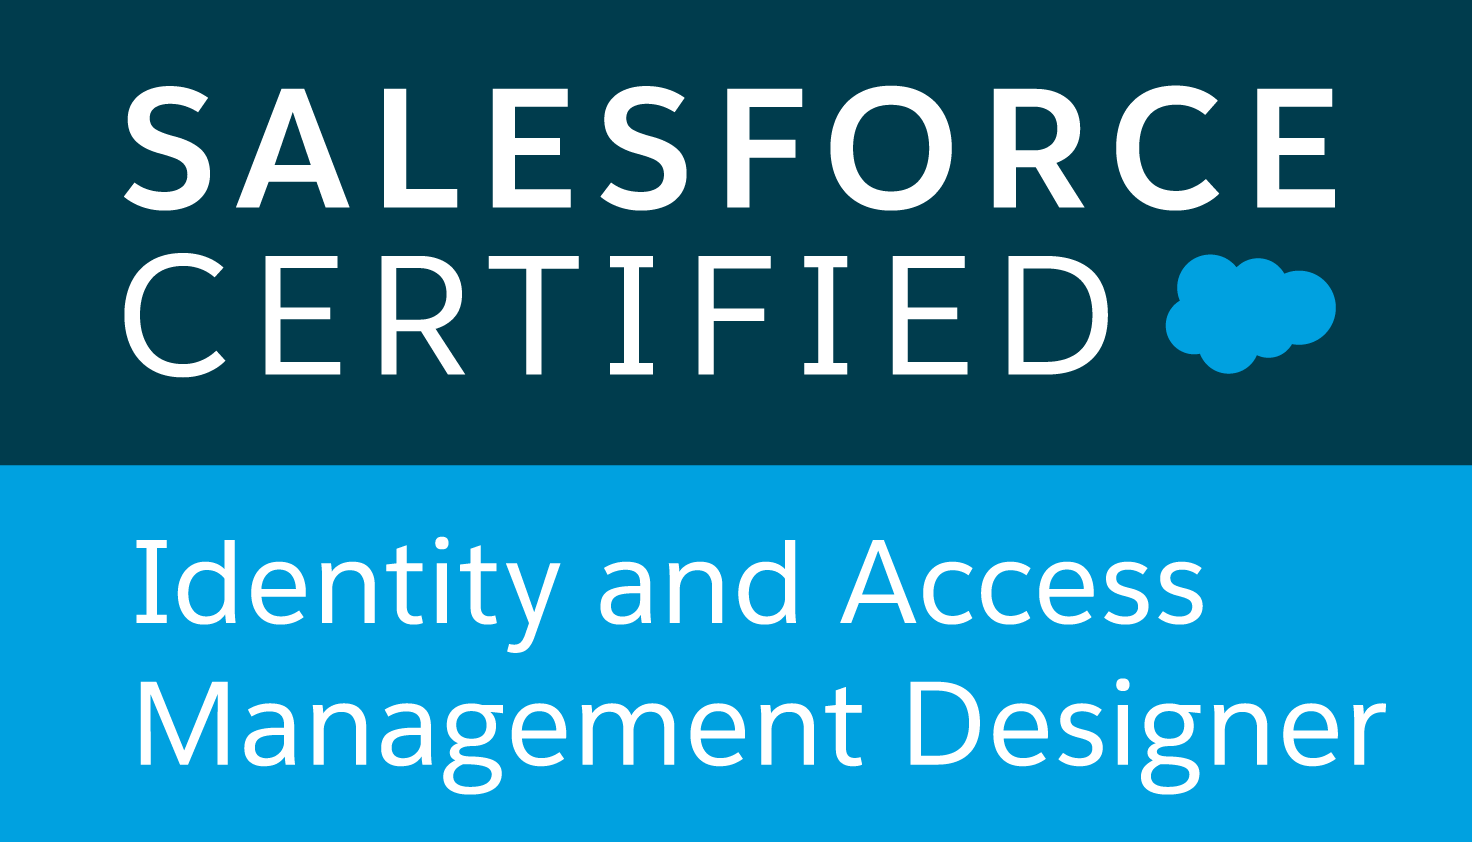 Certified Salesforce Identity and Access Management Designer